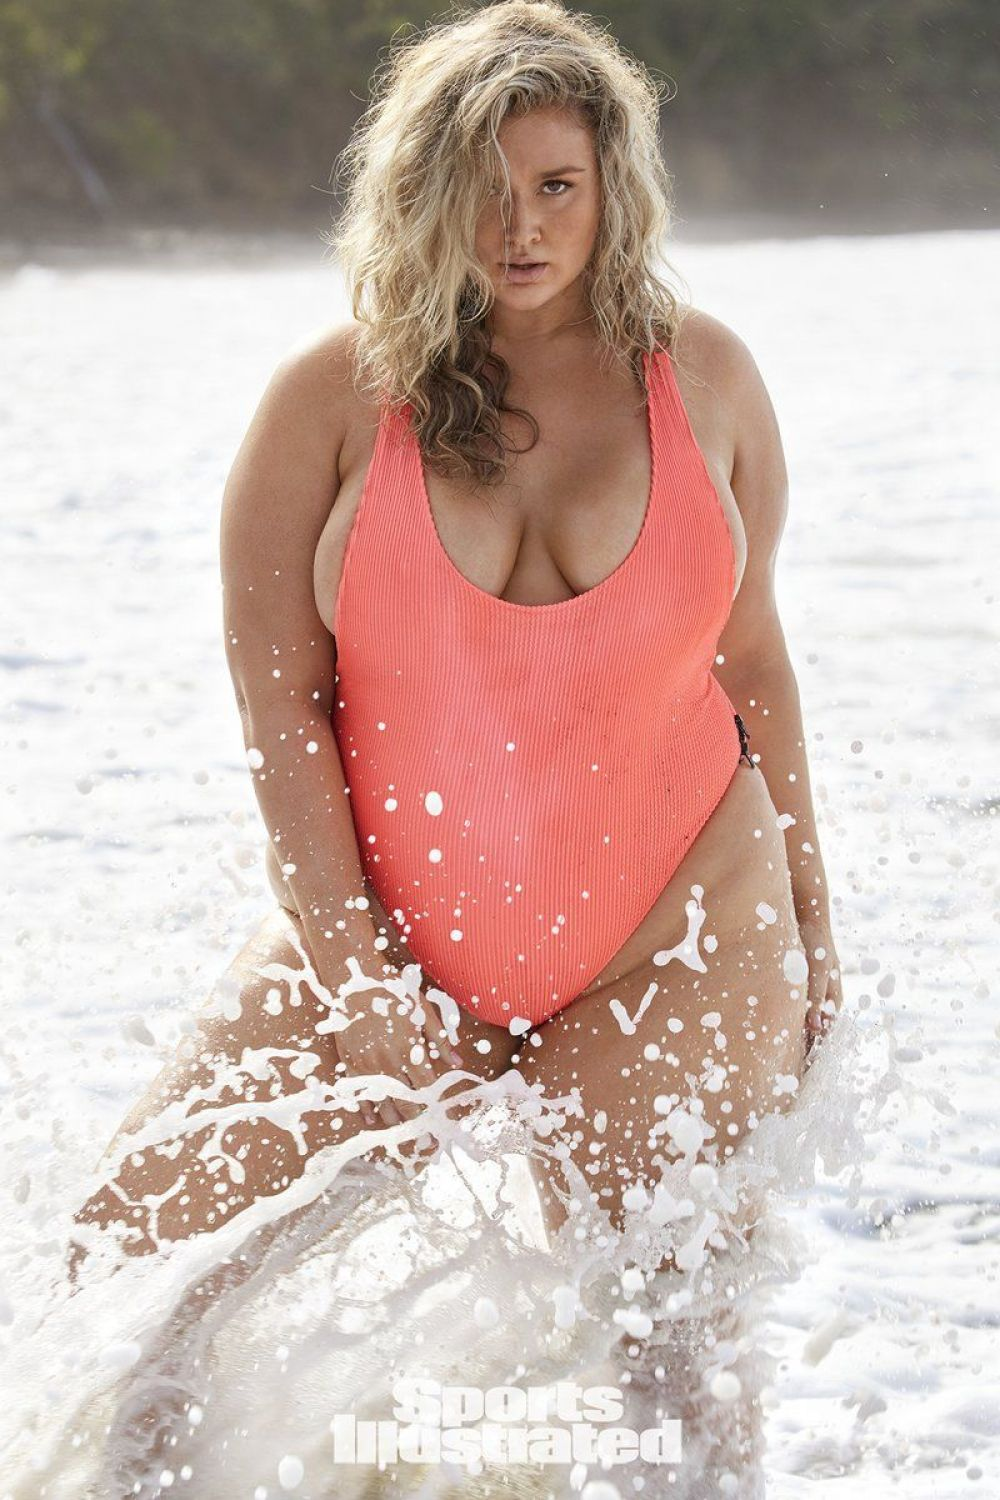 Hunter McGrady In Sports Illustrated Swimsuit 2019 Issue ...